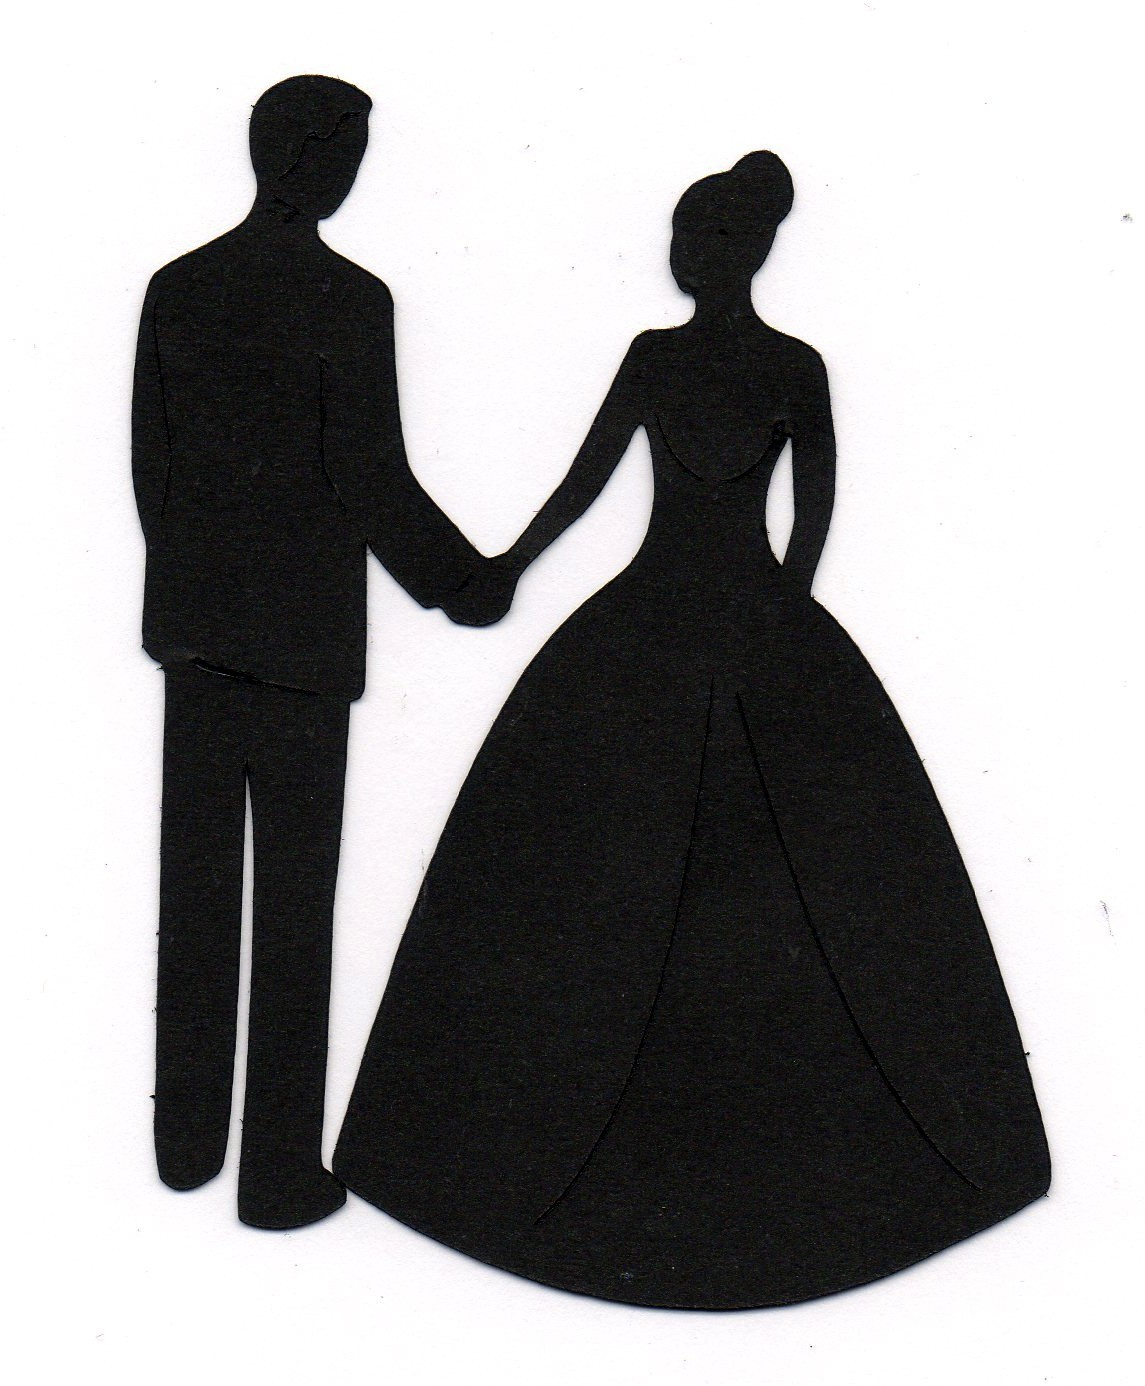 Likely... Husband and wife silhouette have appeared